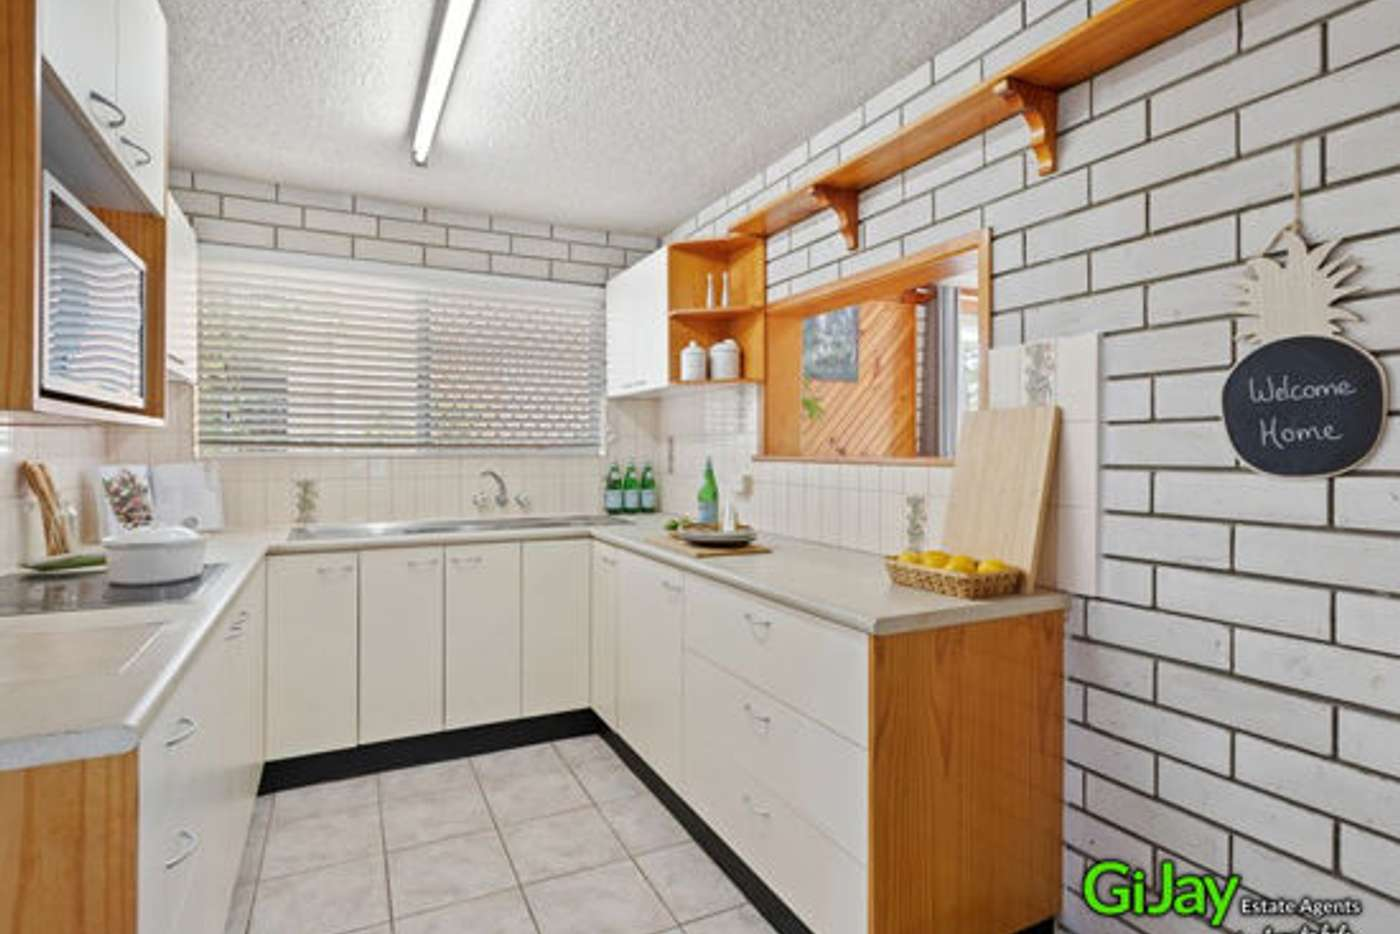 Main view of Homely house listing, 115 Highgate St, Coopers Plains QLD 4108